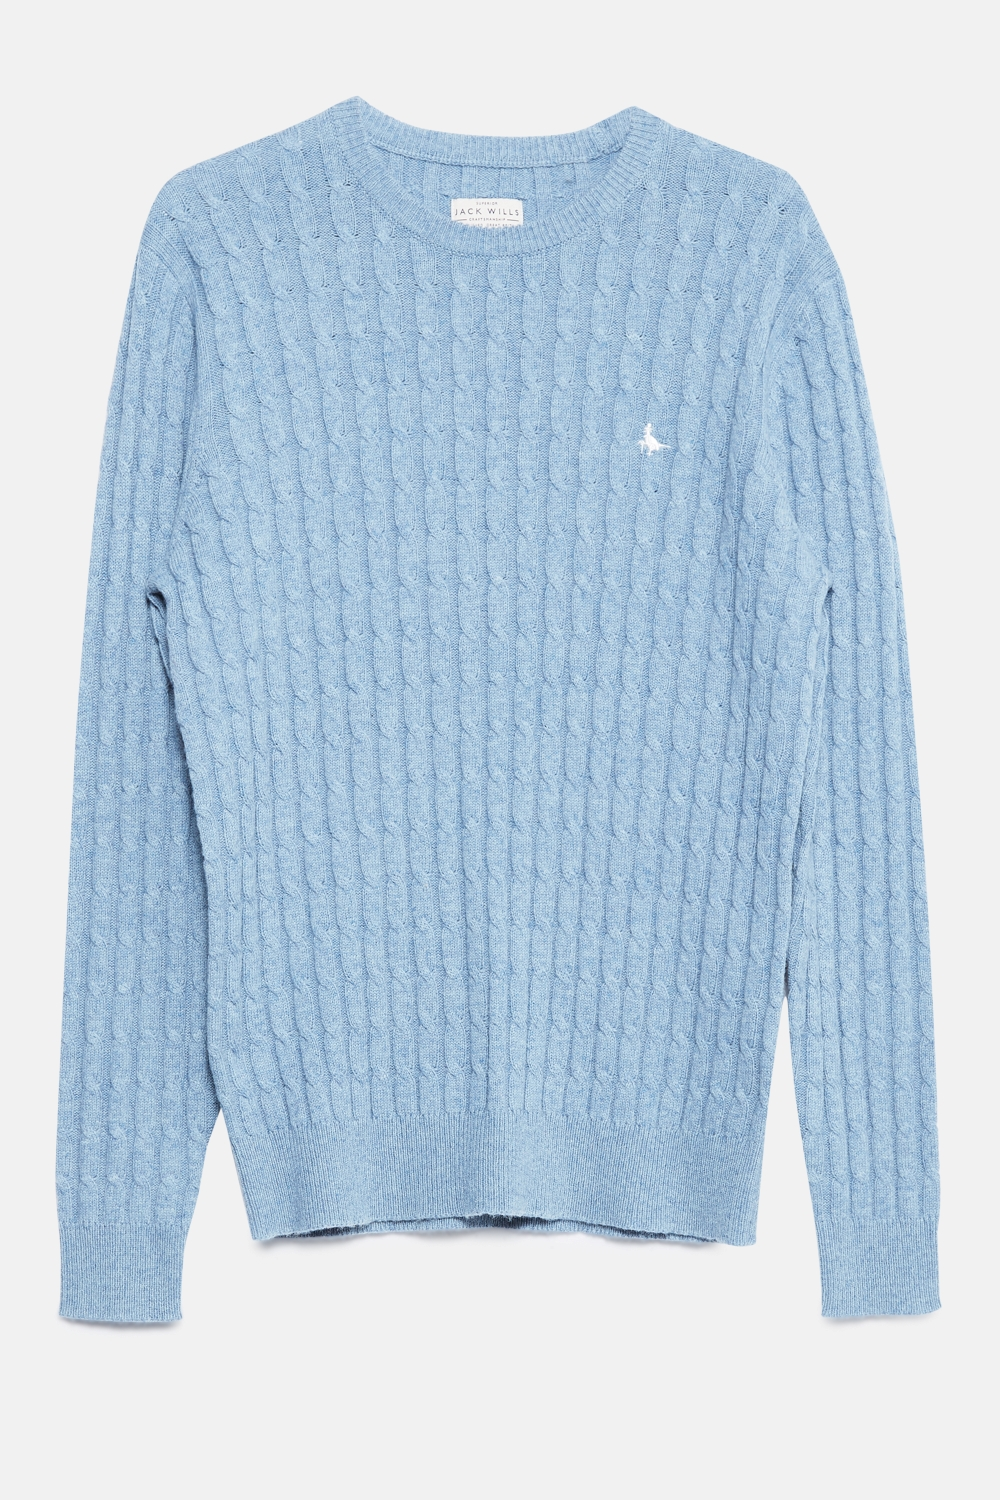 Jack Wills Sky Blue MARLOW CABLE CREW